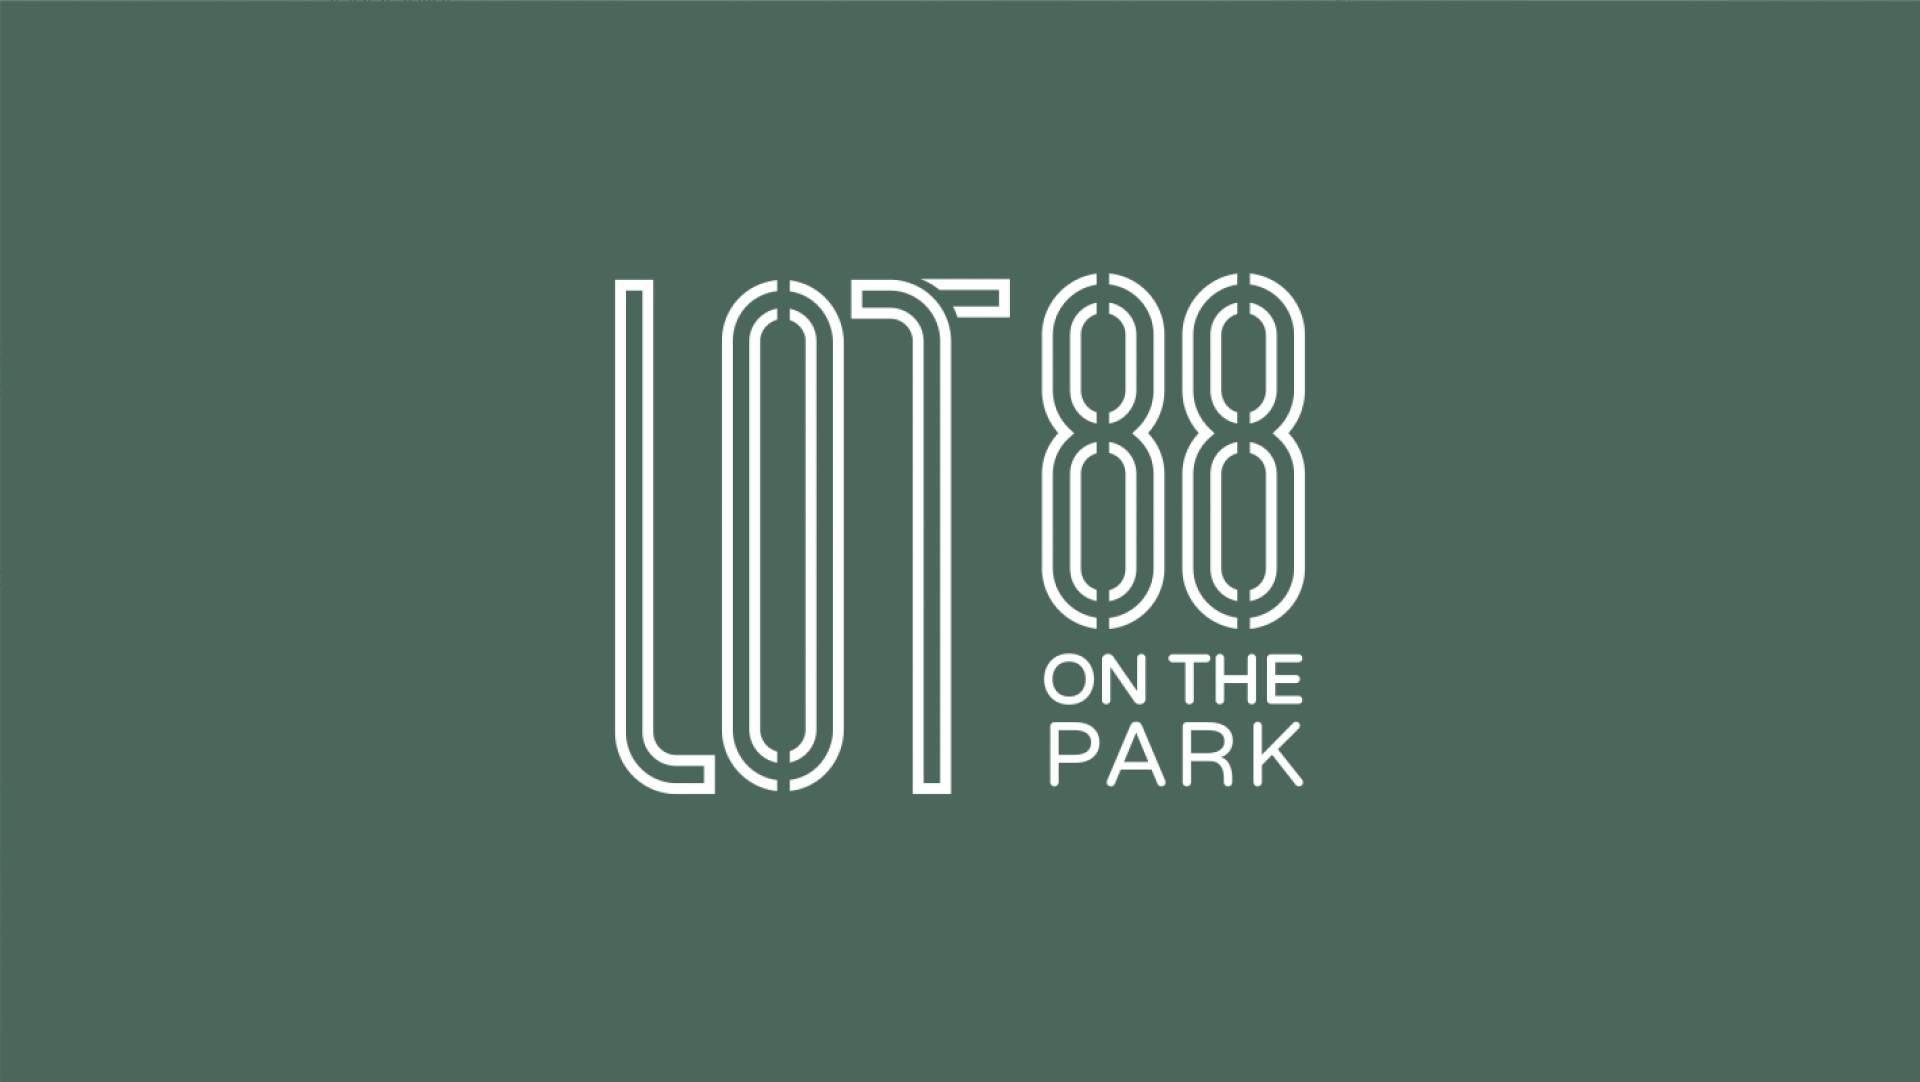 Lot88 on the park Visual Identity Designers